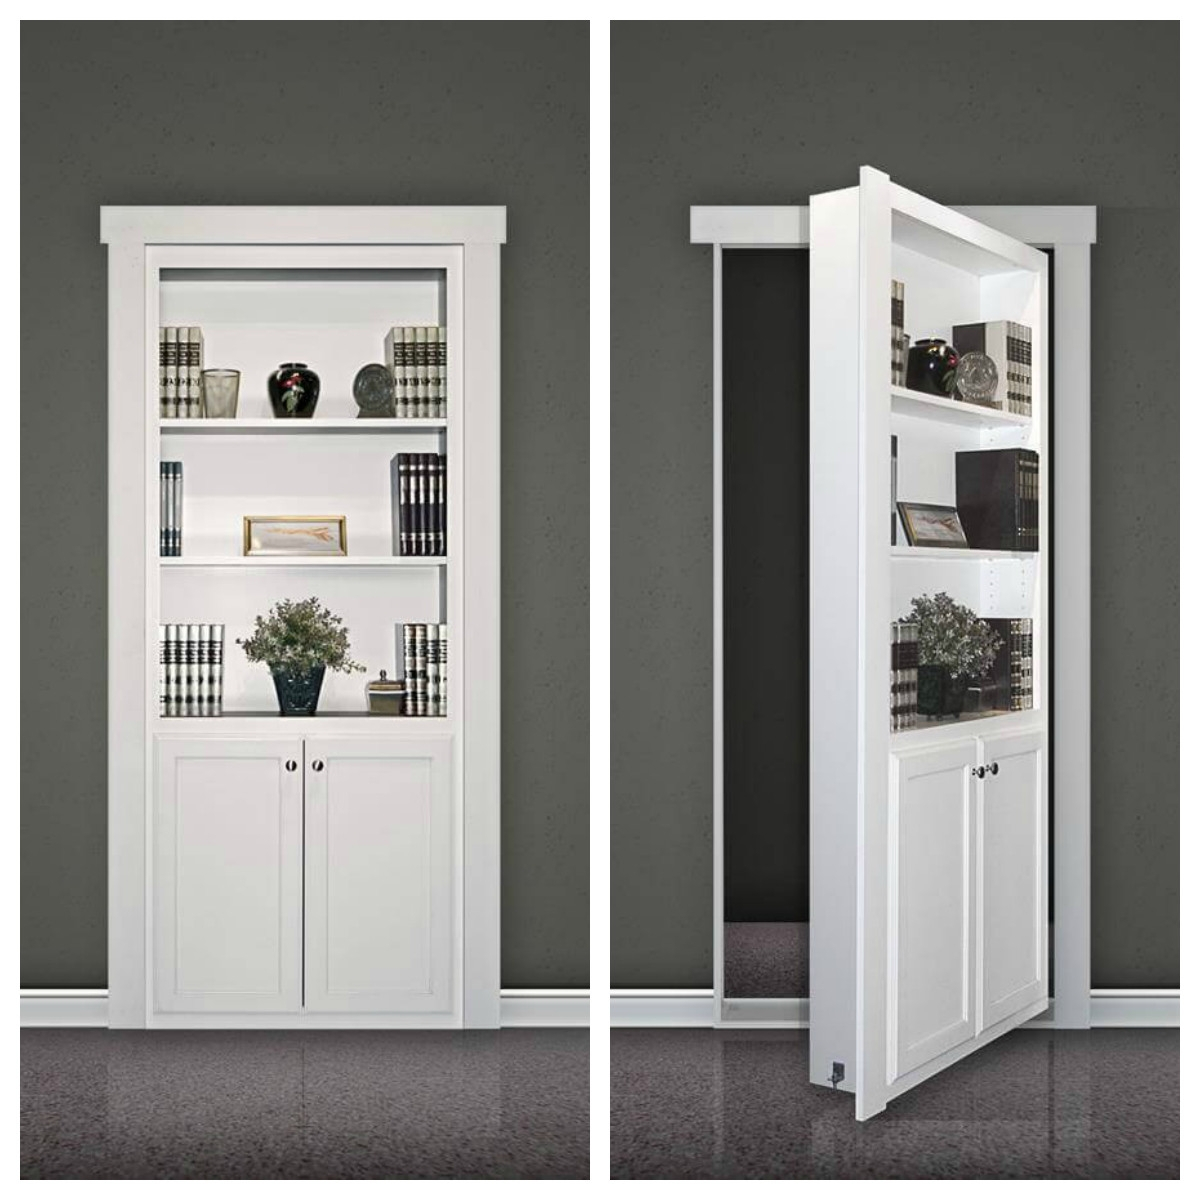 Fulfill A Childhood Dream With A Hidden Door Kit Fine Homebuilding Throughout Built In Bookcase Kit (#9 of 15)